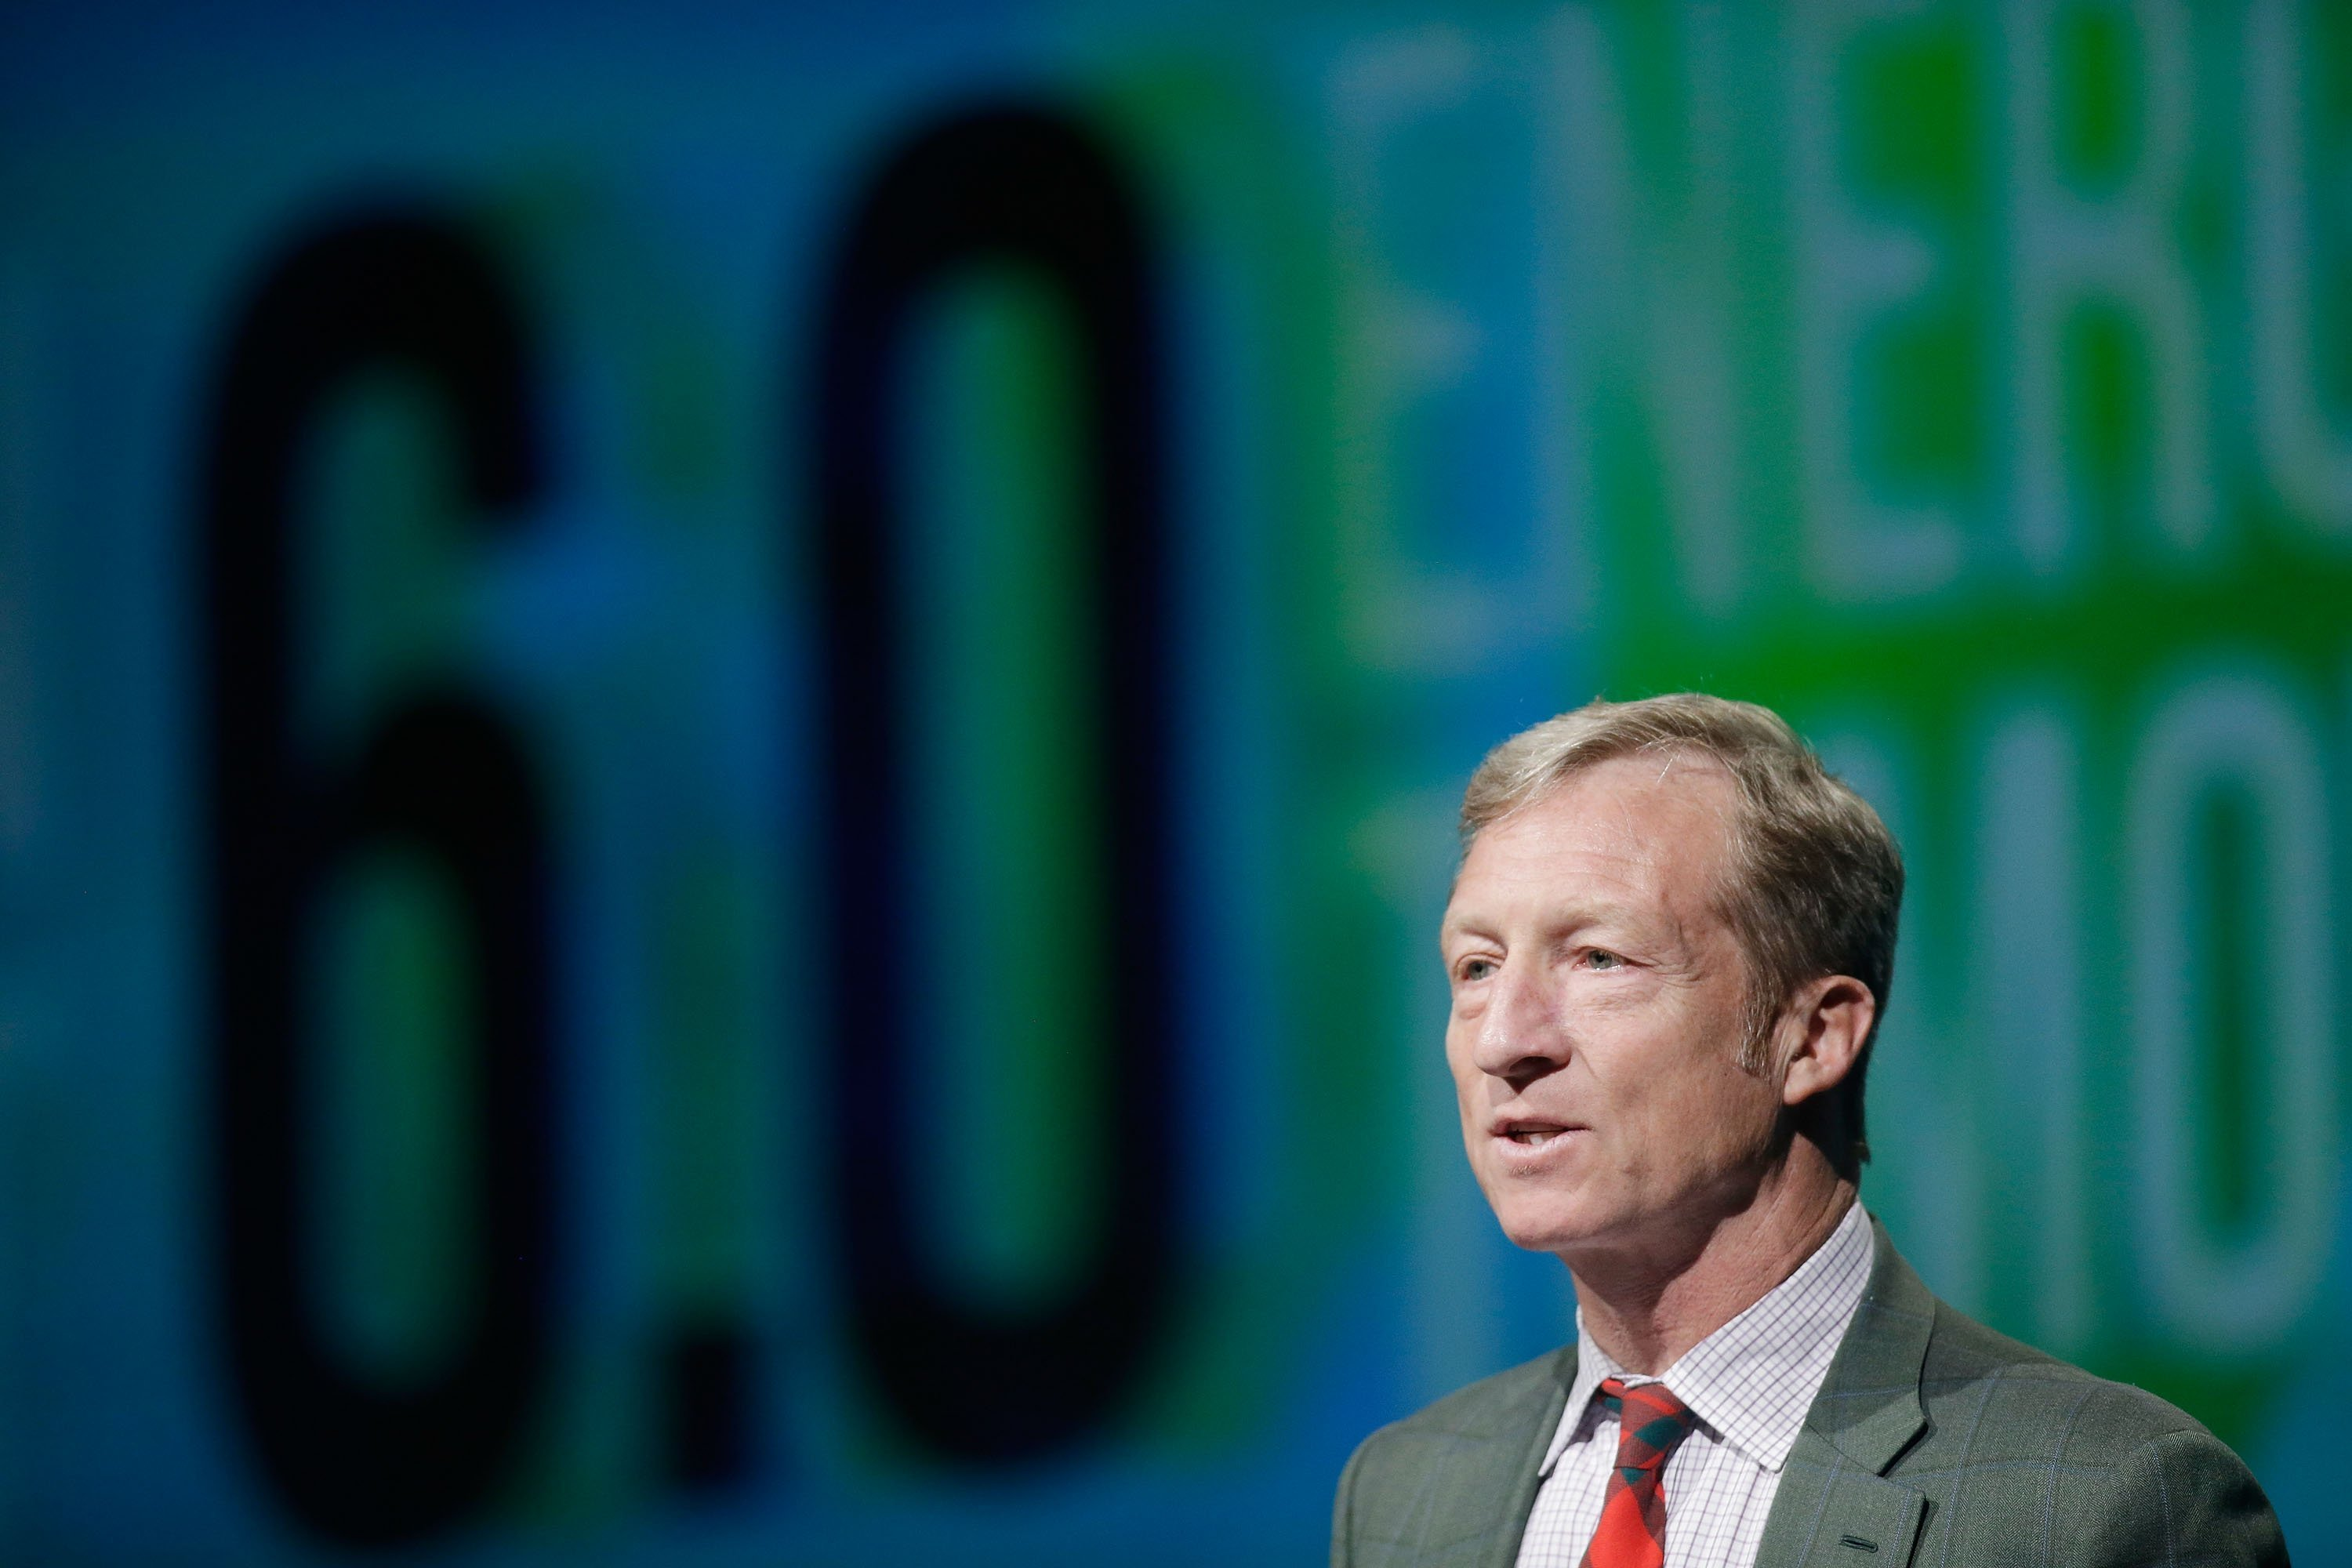 Tom Steyer announces $10 million campaign aiming to impeach Trump